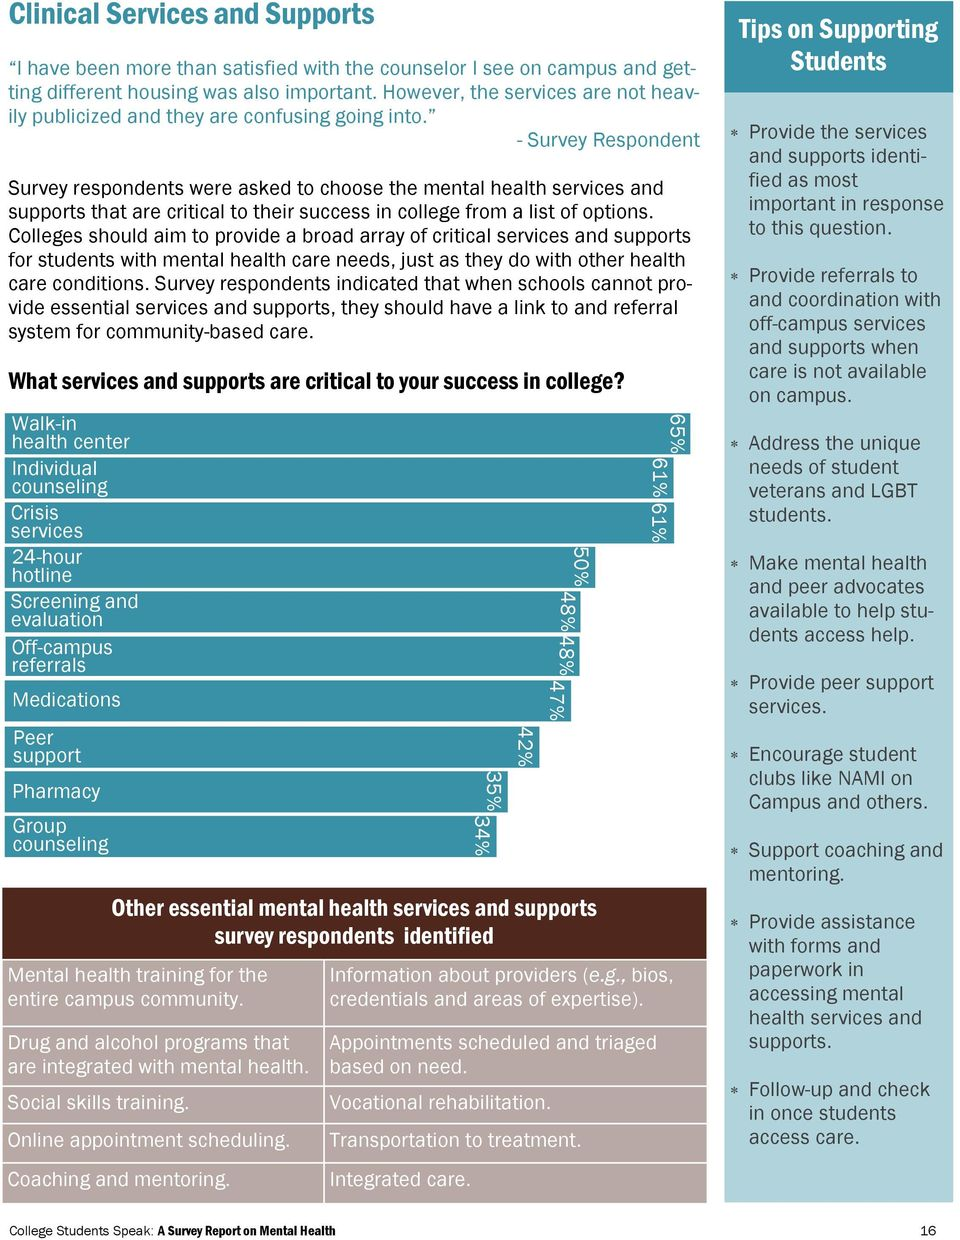 Survey respondents were asked to choose the mental health services and supports that are critical to their success in college from a list of options.